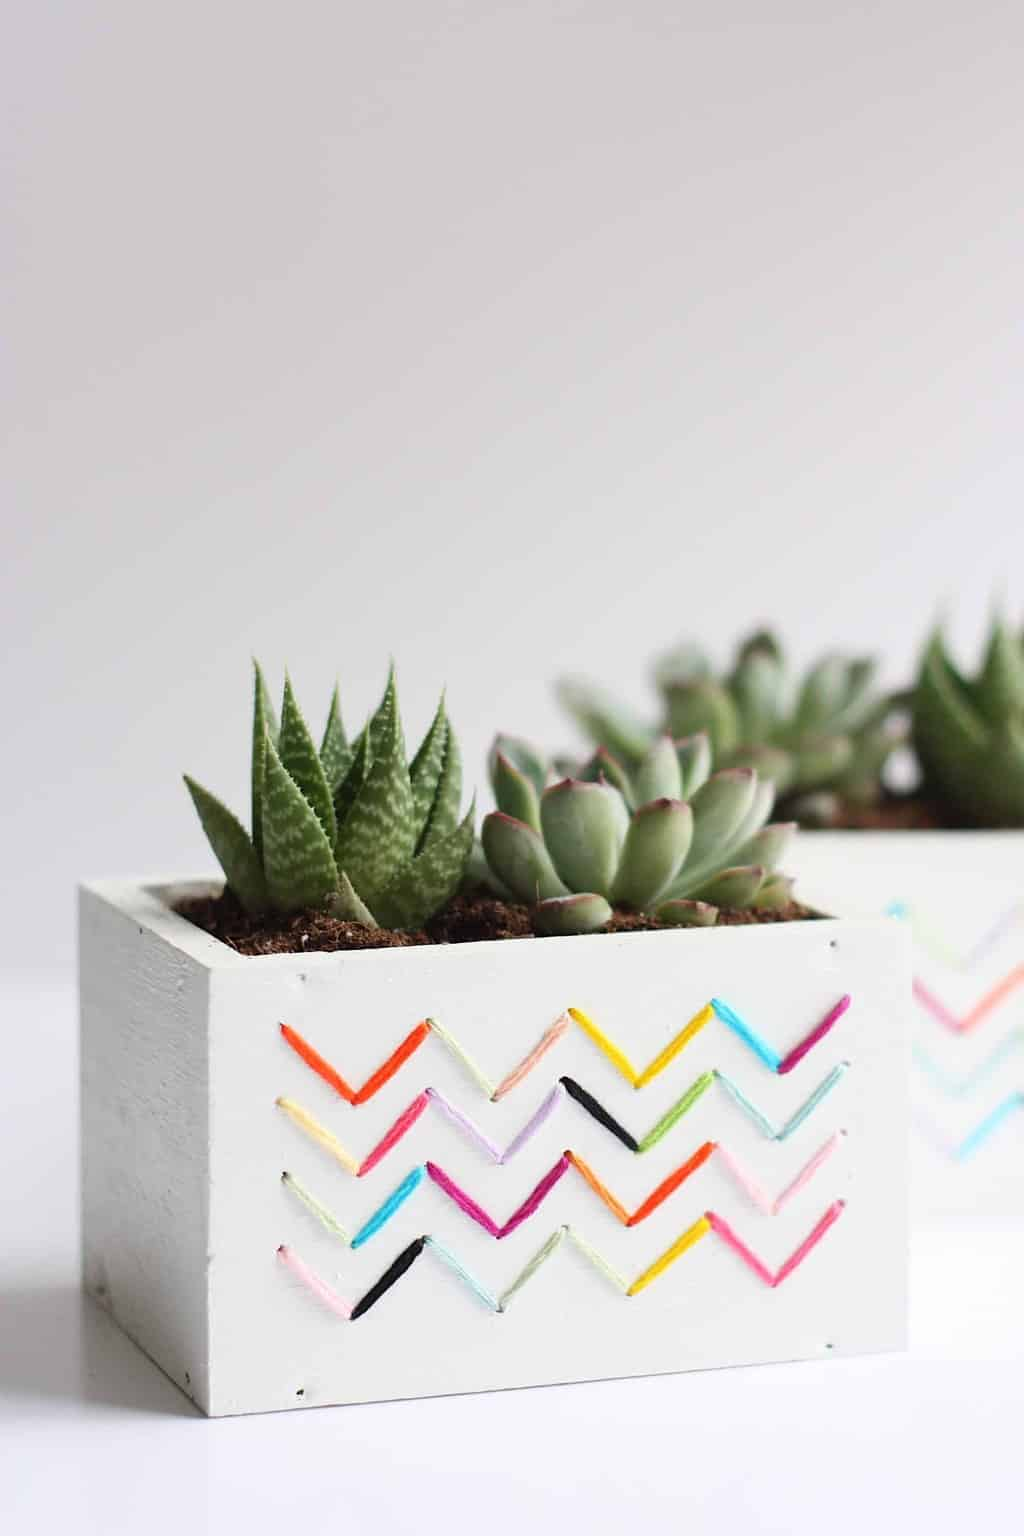 7 DIY Succulent Projects to Green Up Your Space Hello Glow